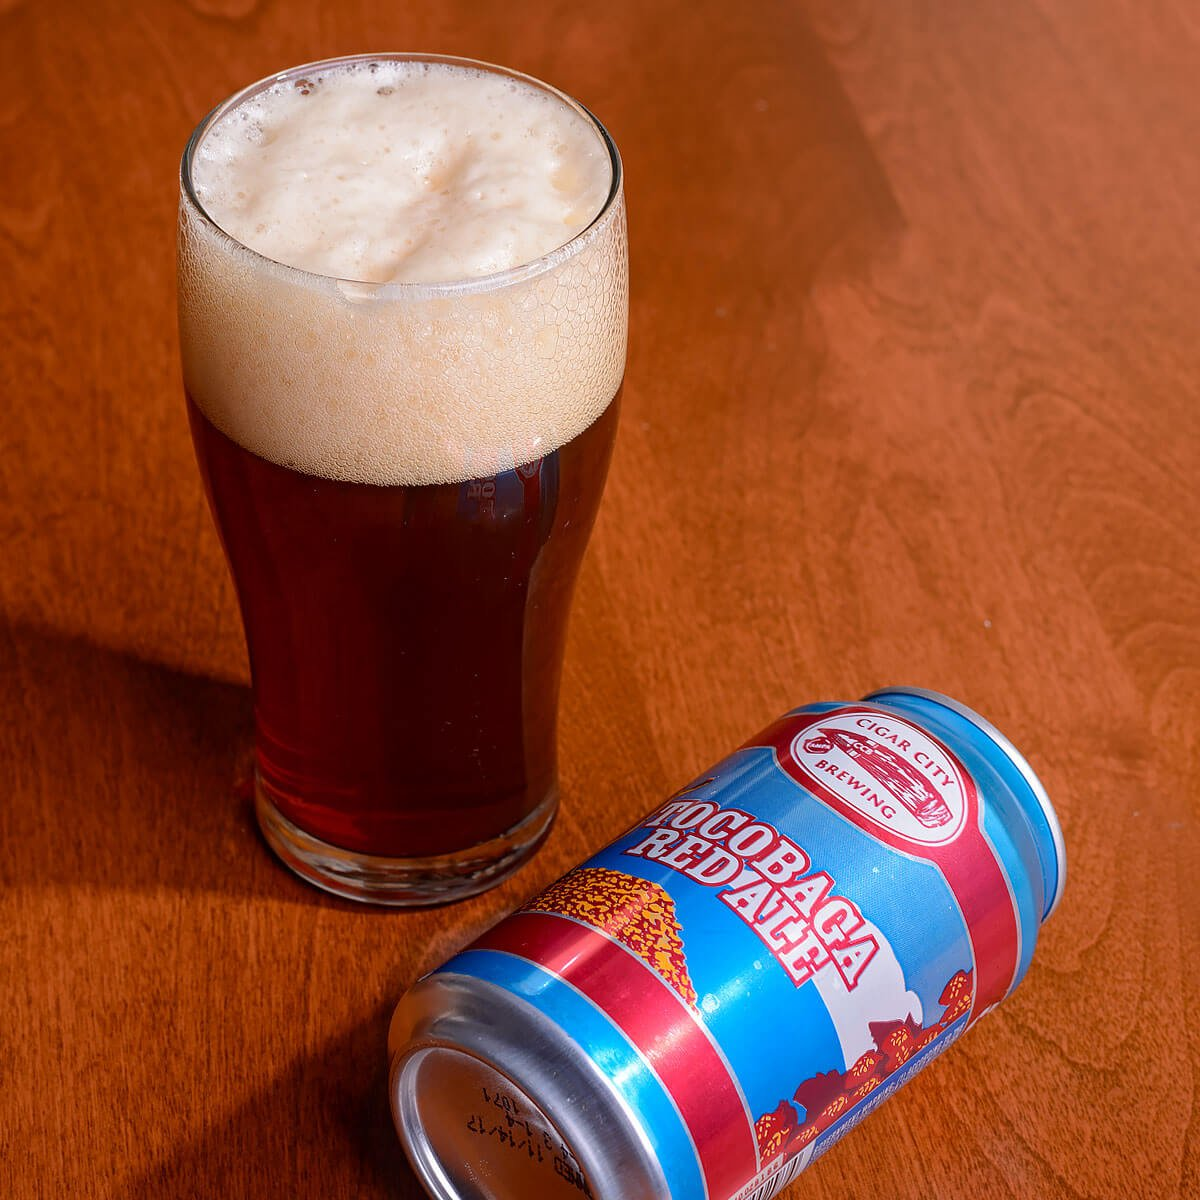 Tocobaga Red Ale, an American Red Ale by Cigar City Brewing